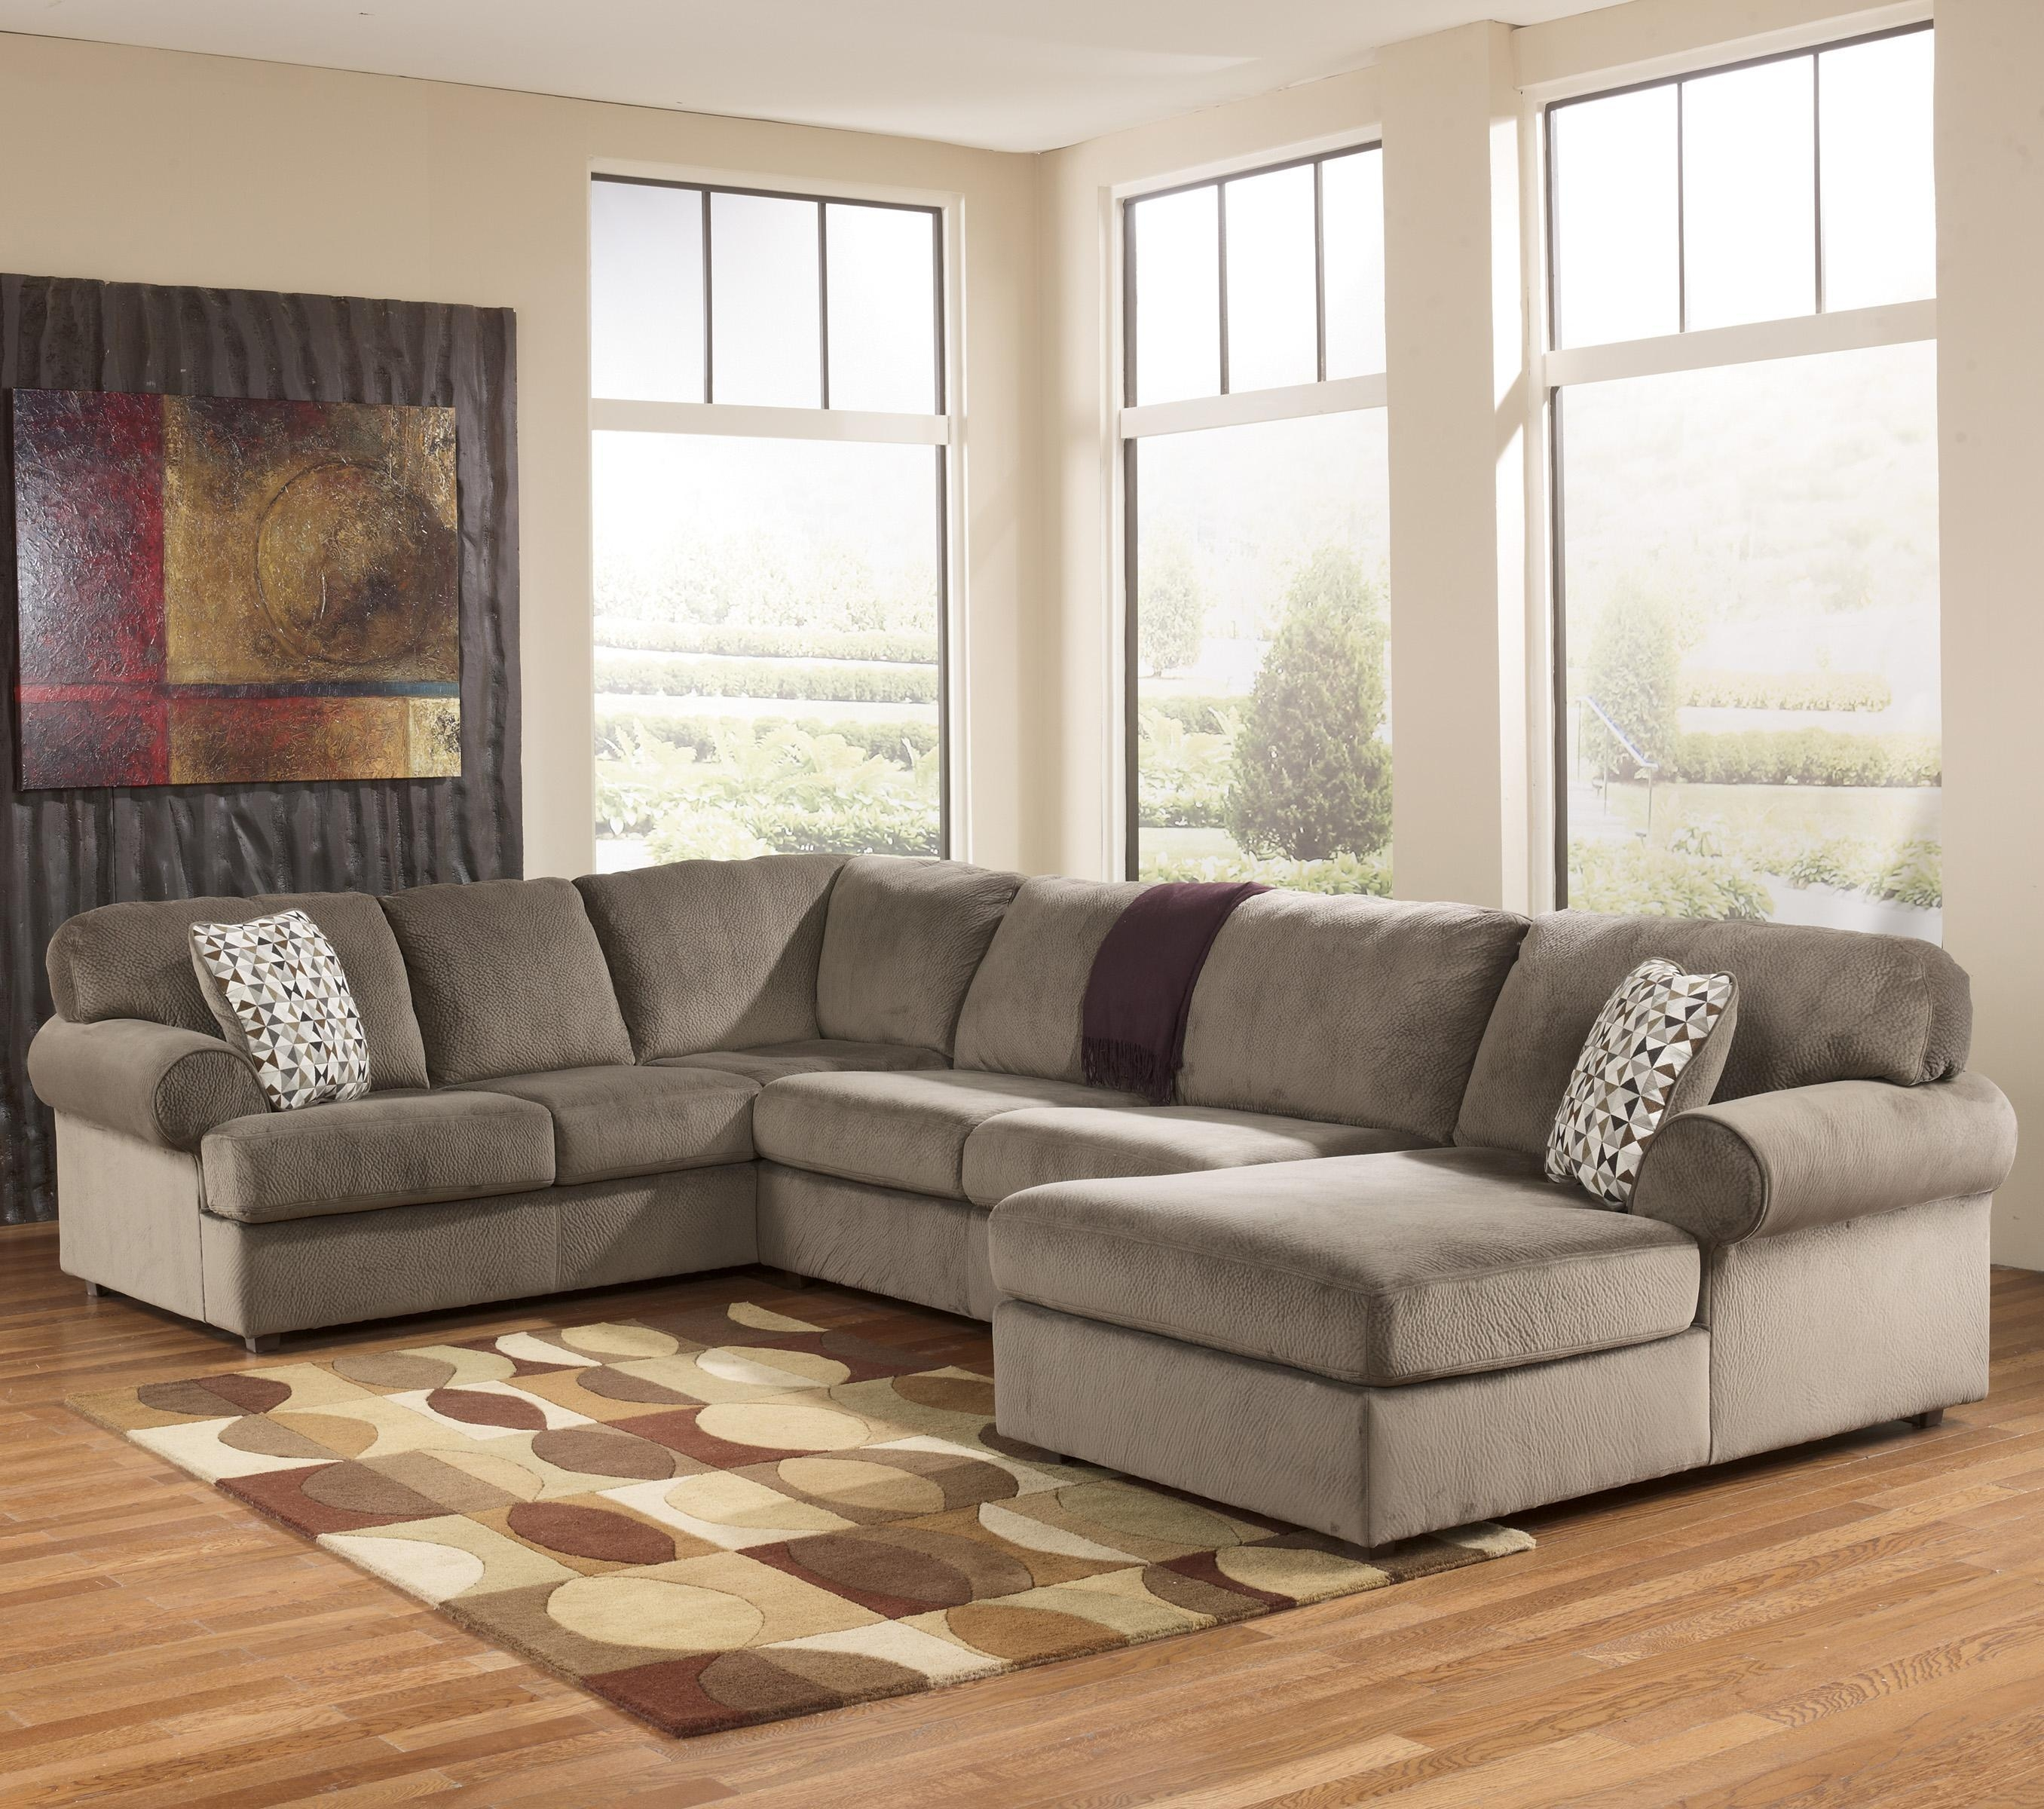 Sofas Center : Ashley Furniture Sectionals Sectional Couch Gray For Ashley Furniture Corduroy Sectional Sofas (Image 14 of 20)